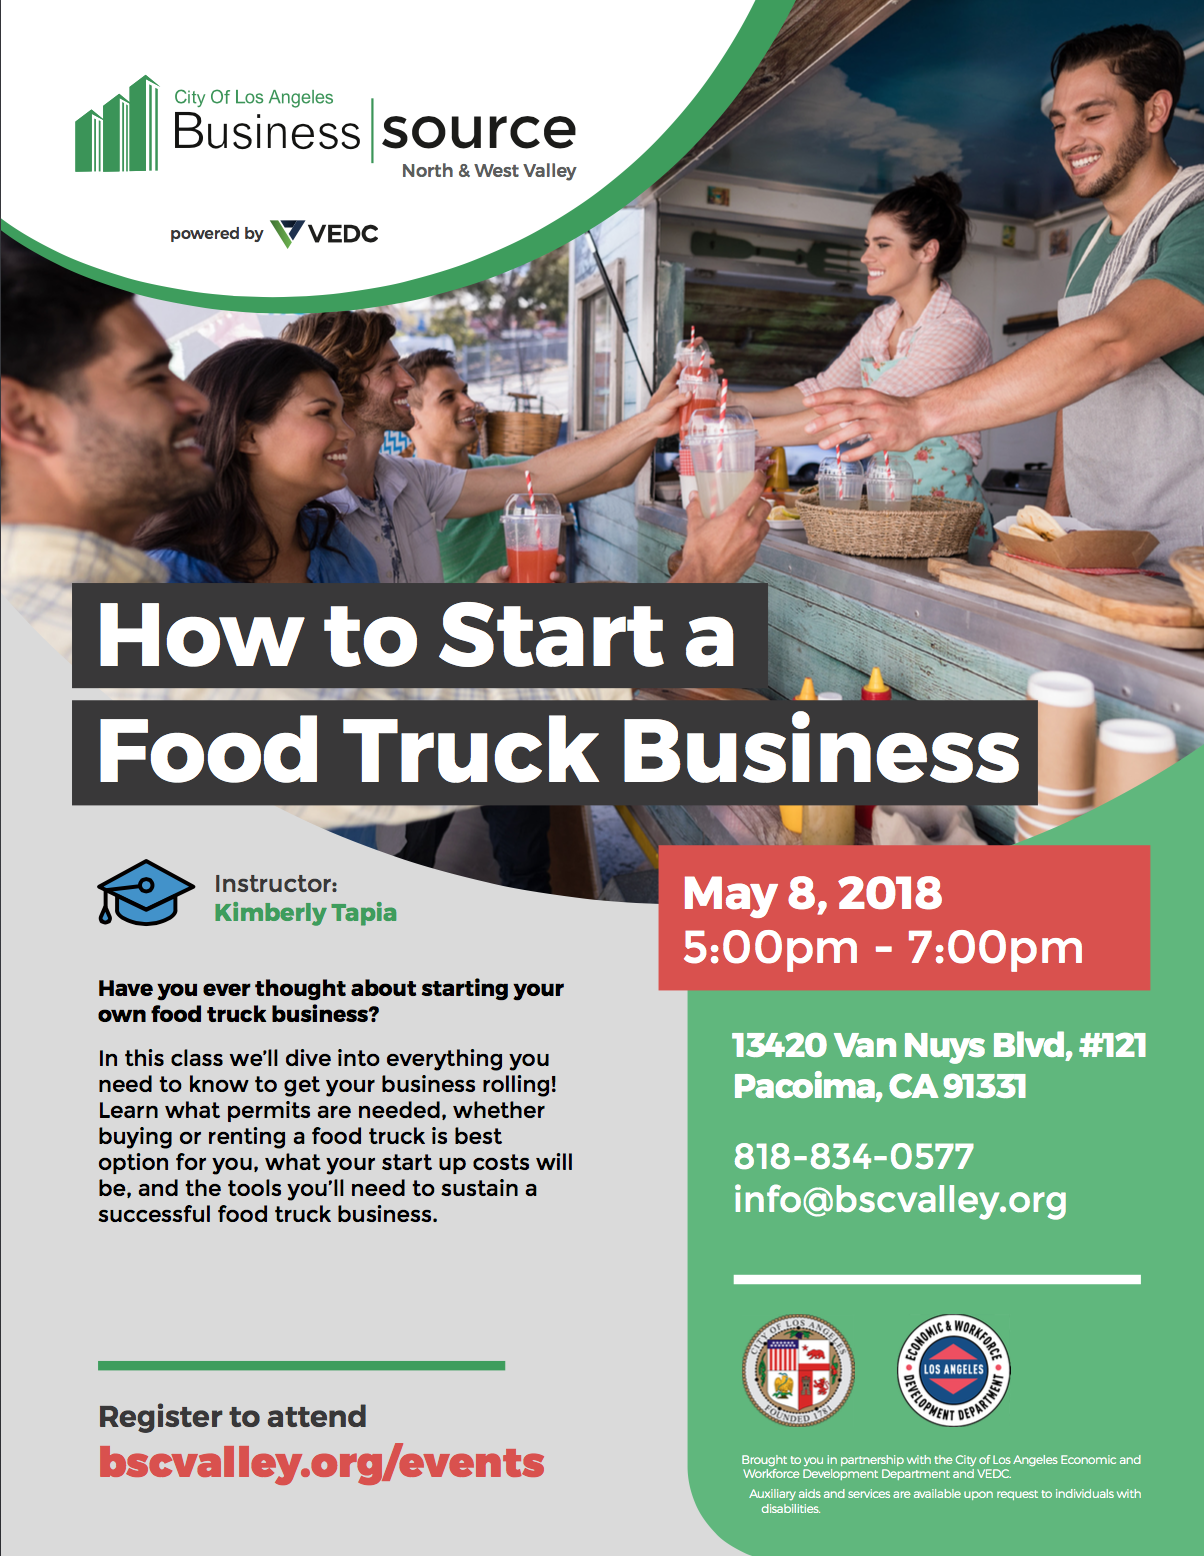 MAY 8, 2018 – How to Start Your Food Truck Business – FREE Workshop